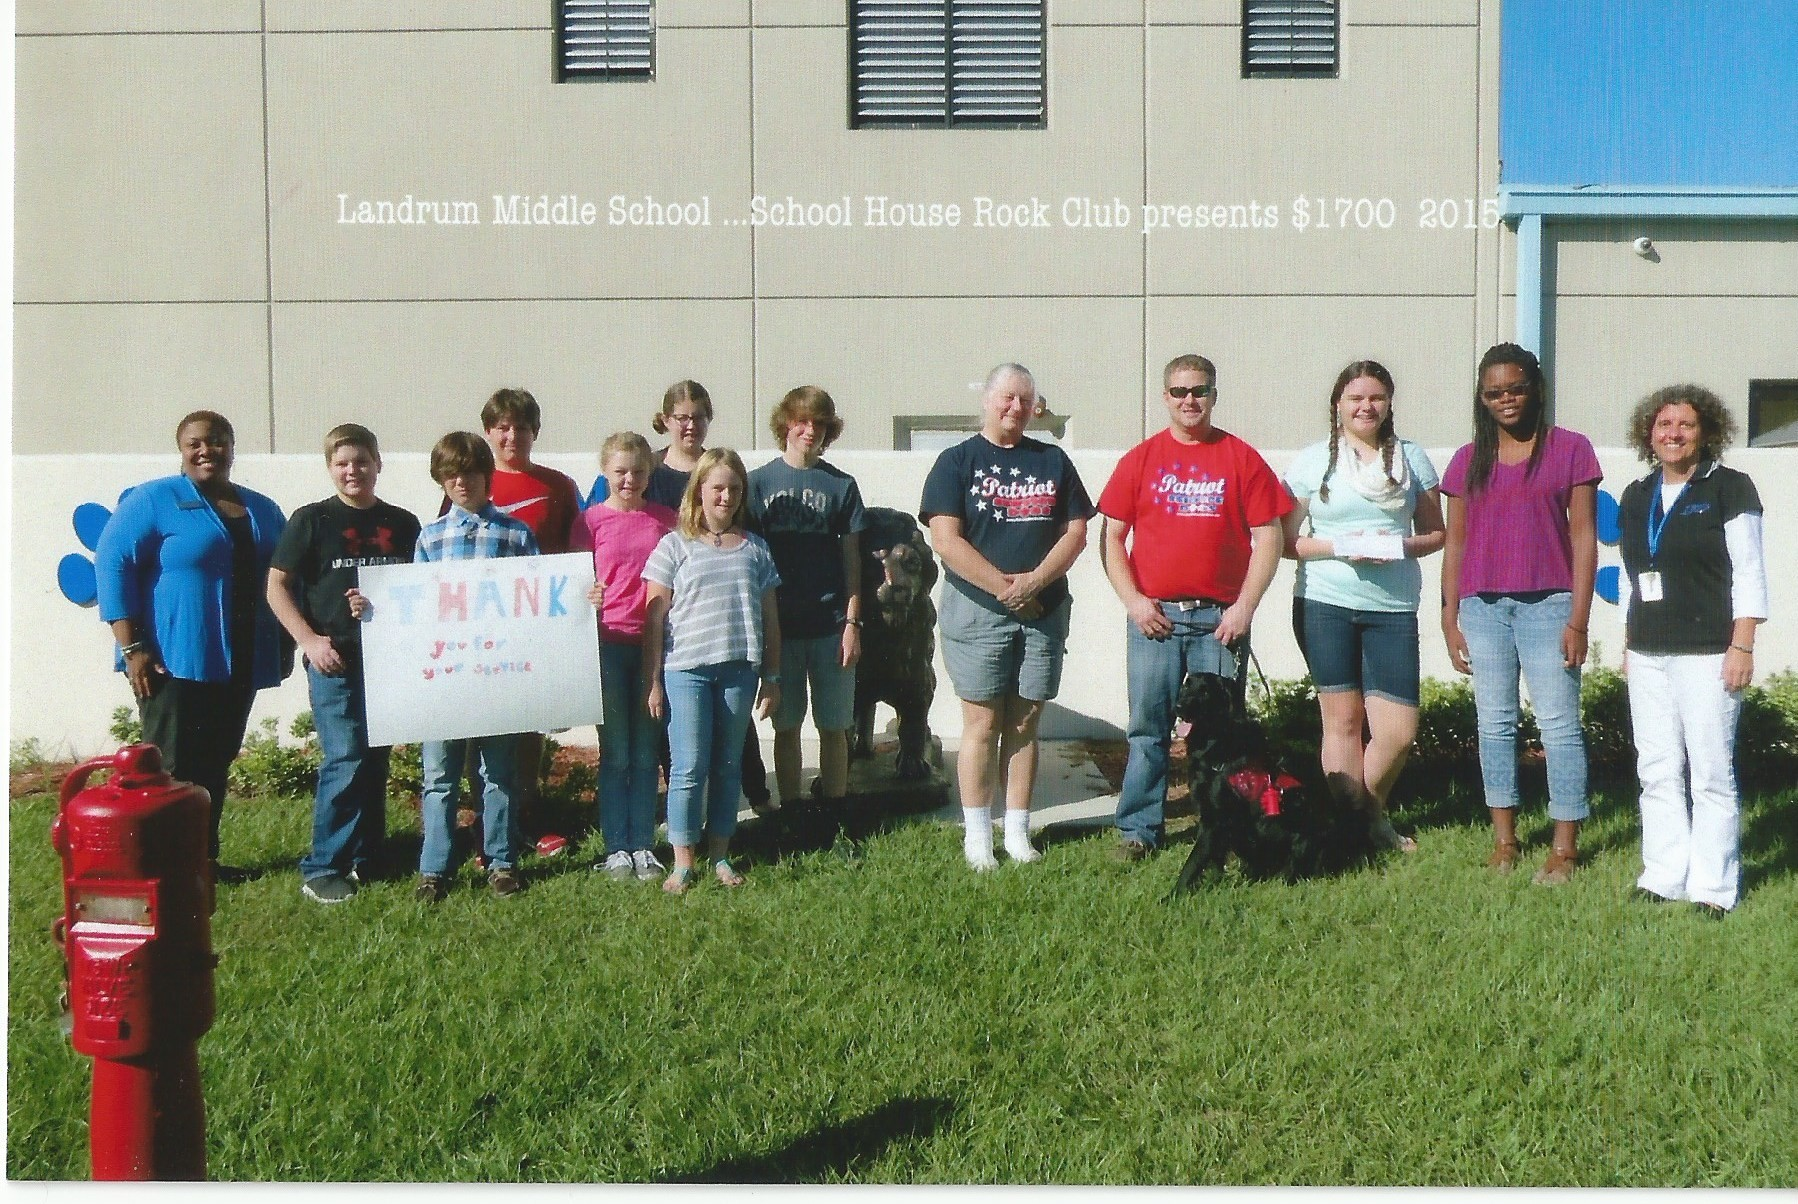 From Pictured from left to right are: Principal Jewel Johnson, Jonathan Southerland, Harry O'Connor, Isabella DiStefano, Phoebe Collins, Kendall Welling, Max McBride, Volunteer for Patriot service Dogs Susan Bolton, Veteran Chris Smith, Service Dog Georgia, club presidents Brielle Kelley and Alyssa Bacchus, and sponsor Laurie Stanton.